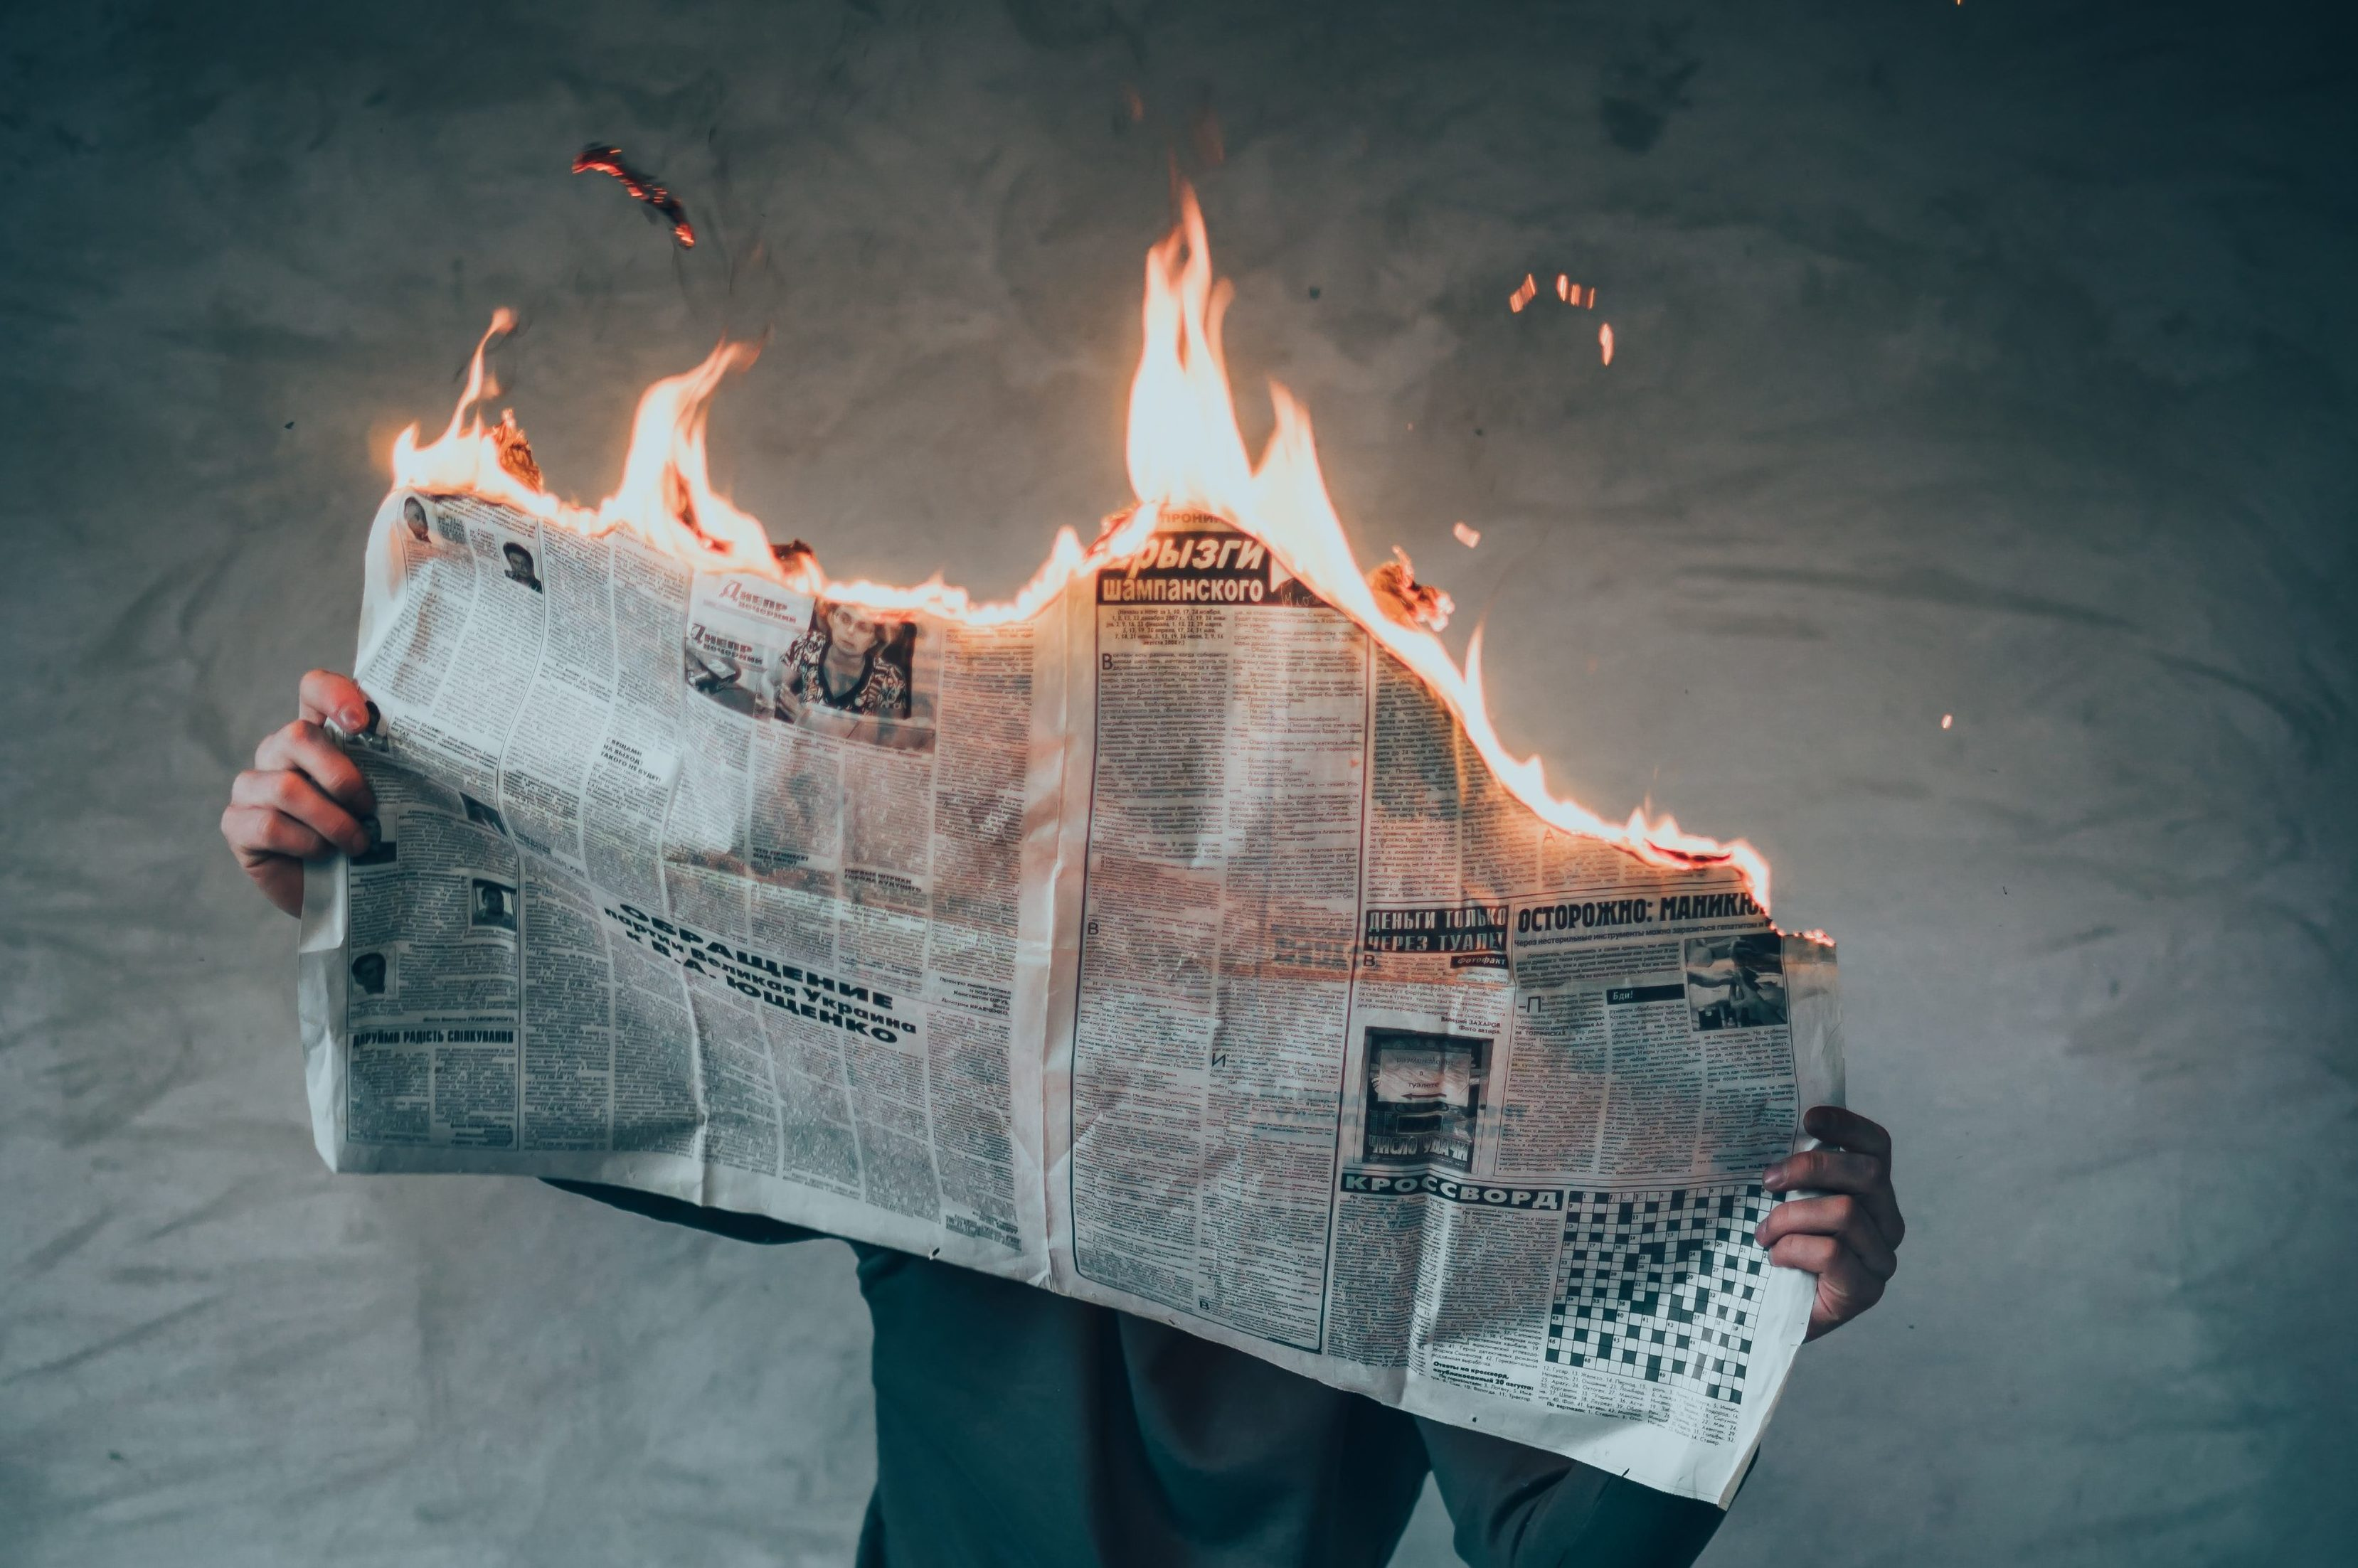 A man reads a newspaper that is on fire while standing against a wall